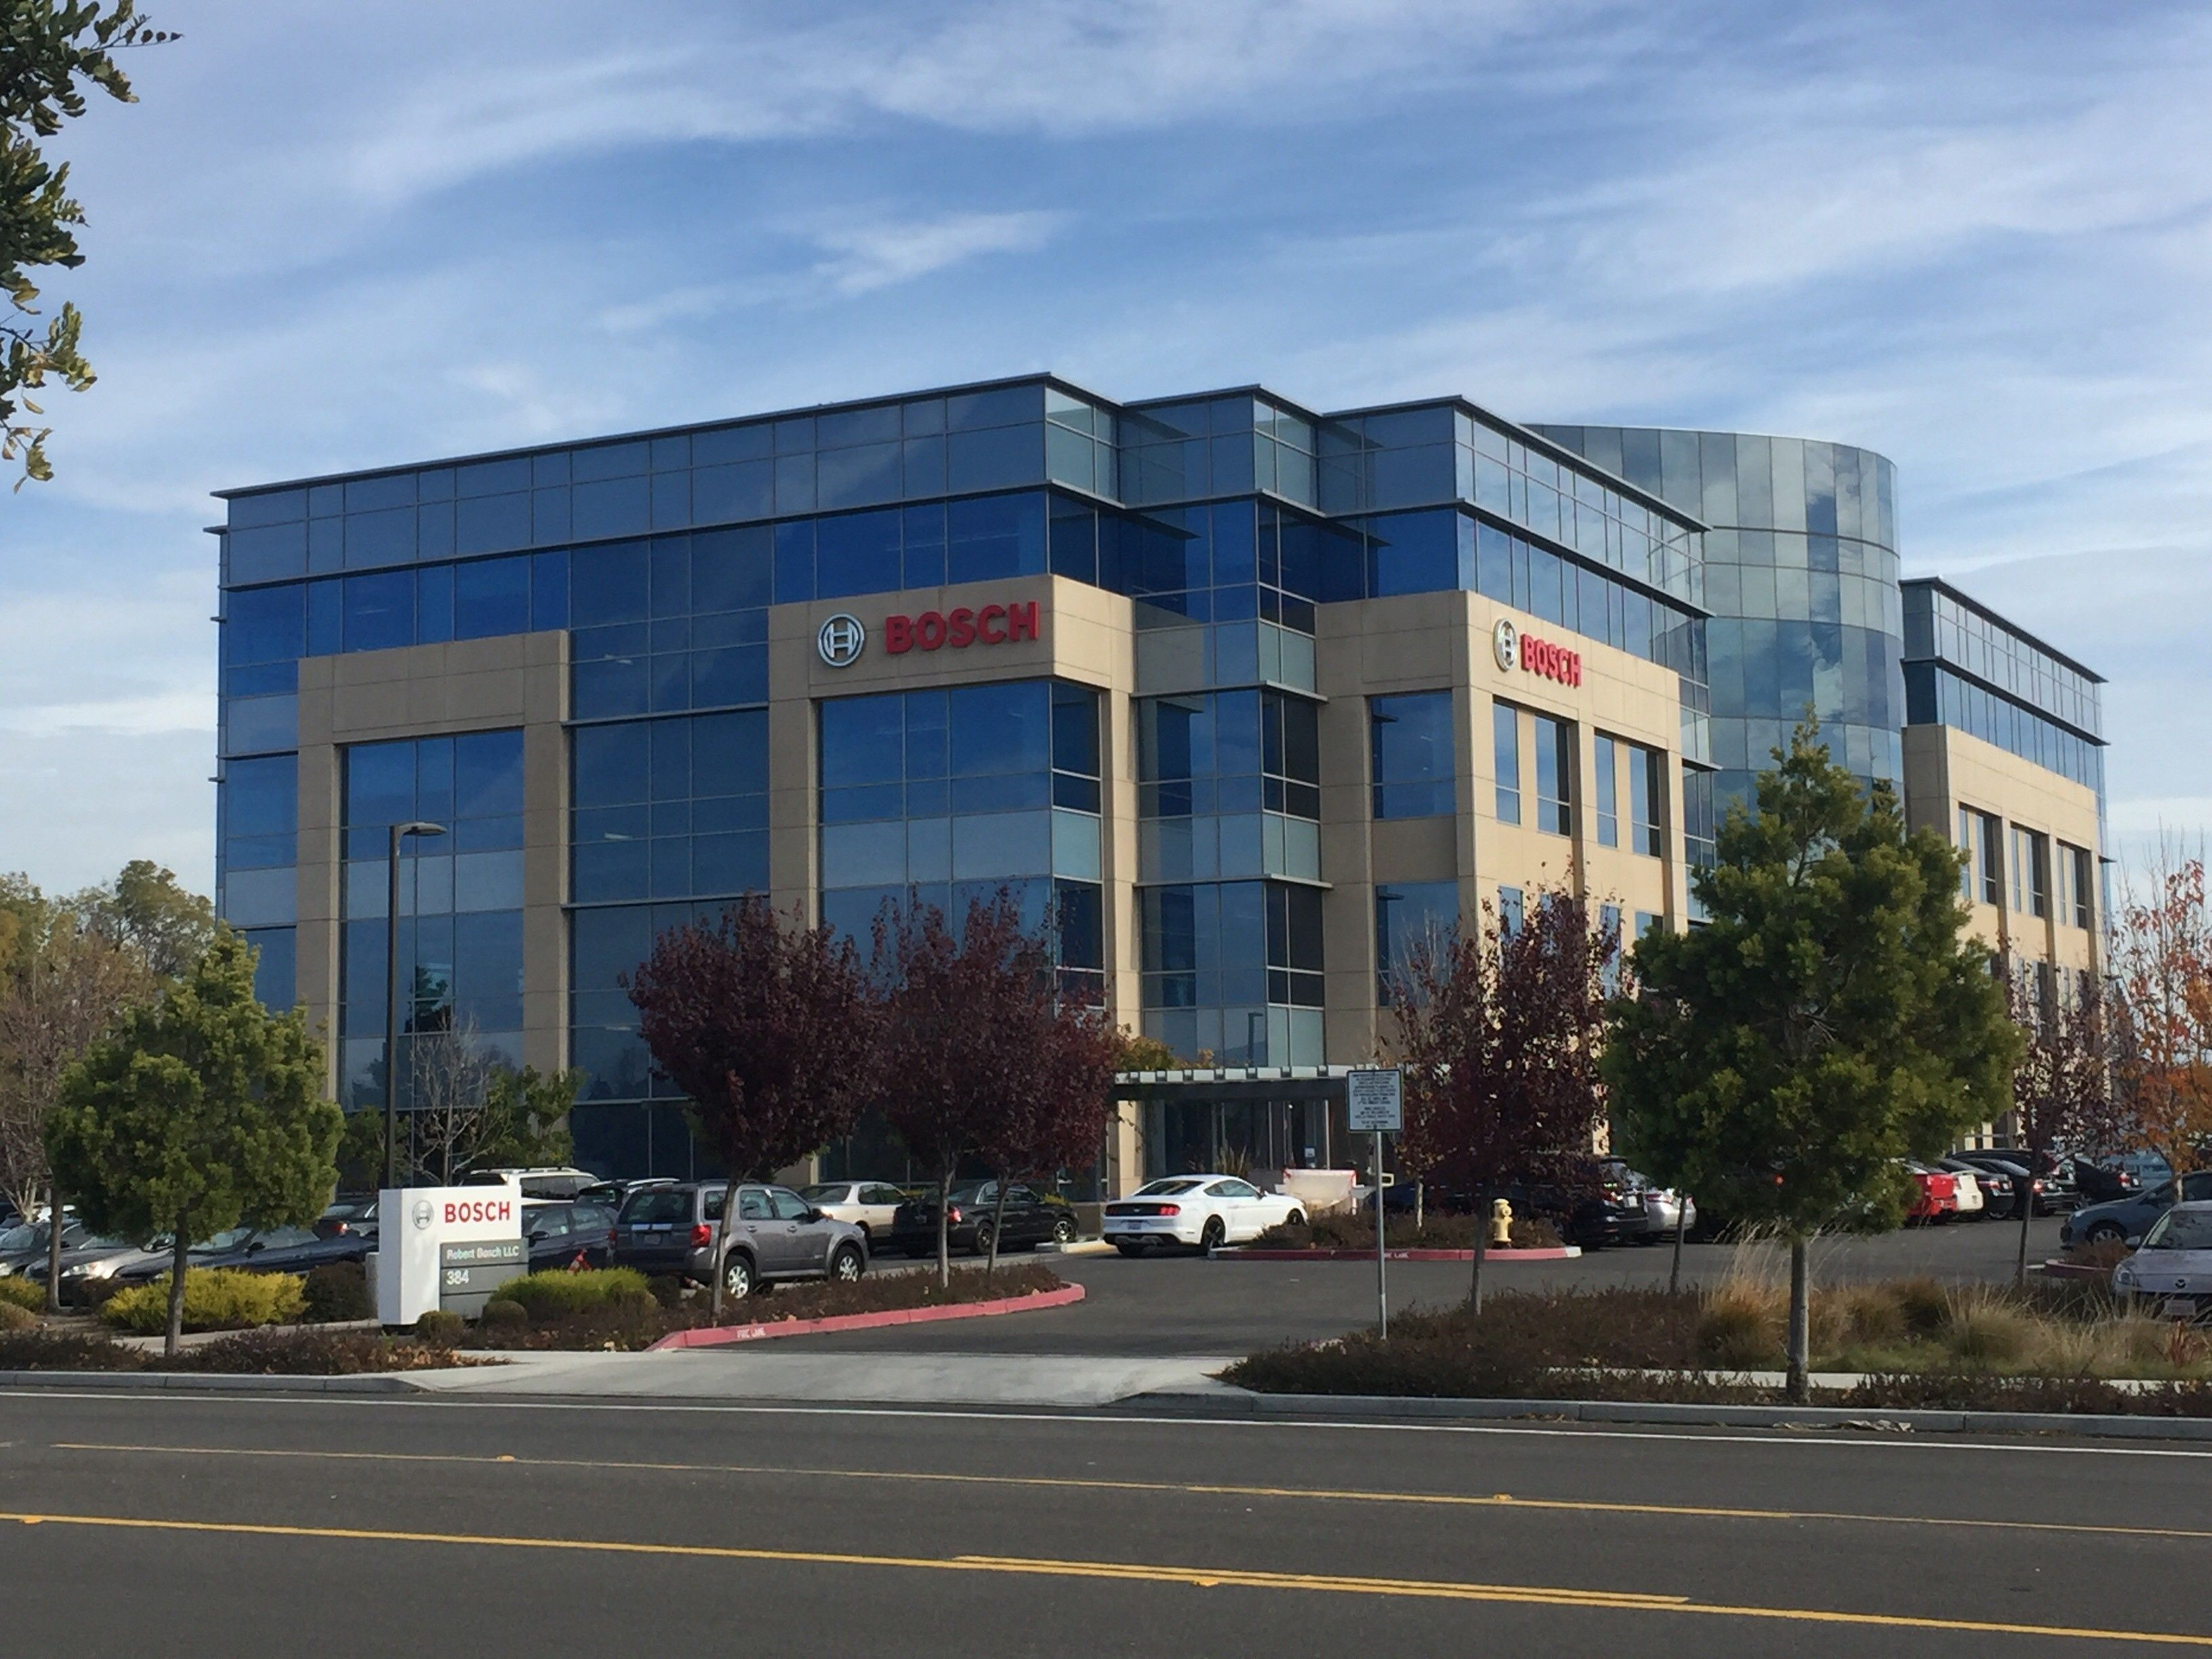 Am Puls des Silicon Valley: Bosch Research and Technology Center in Sunnyvale